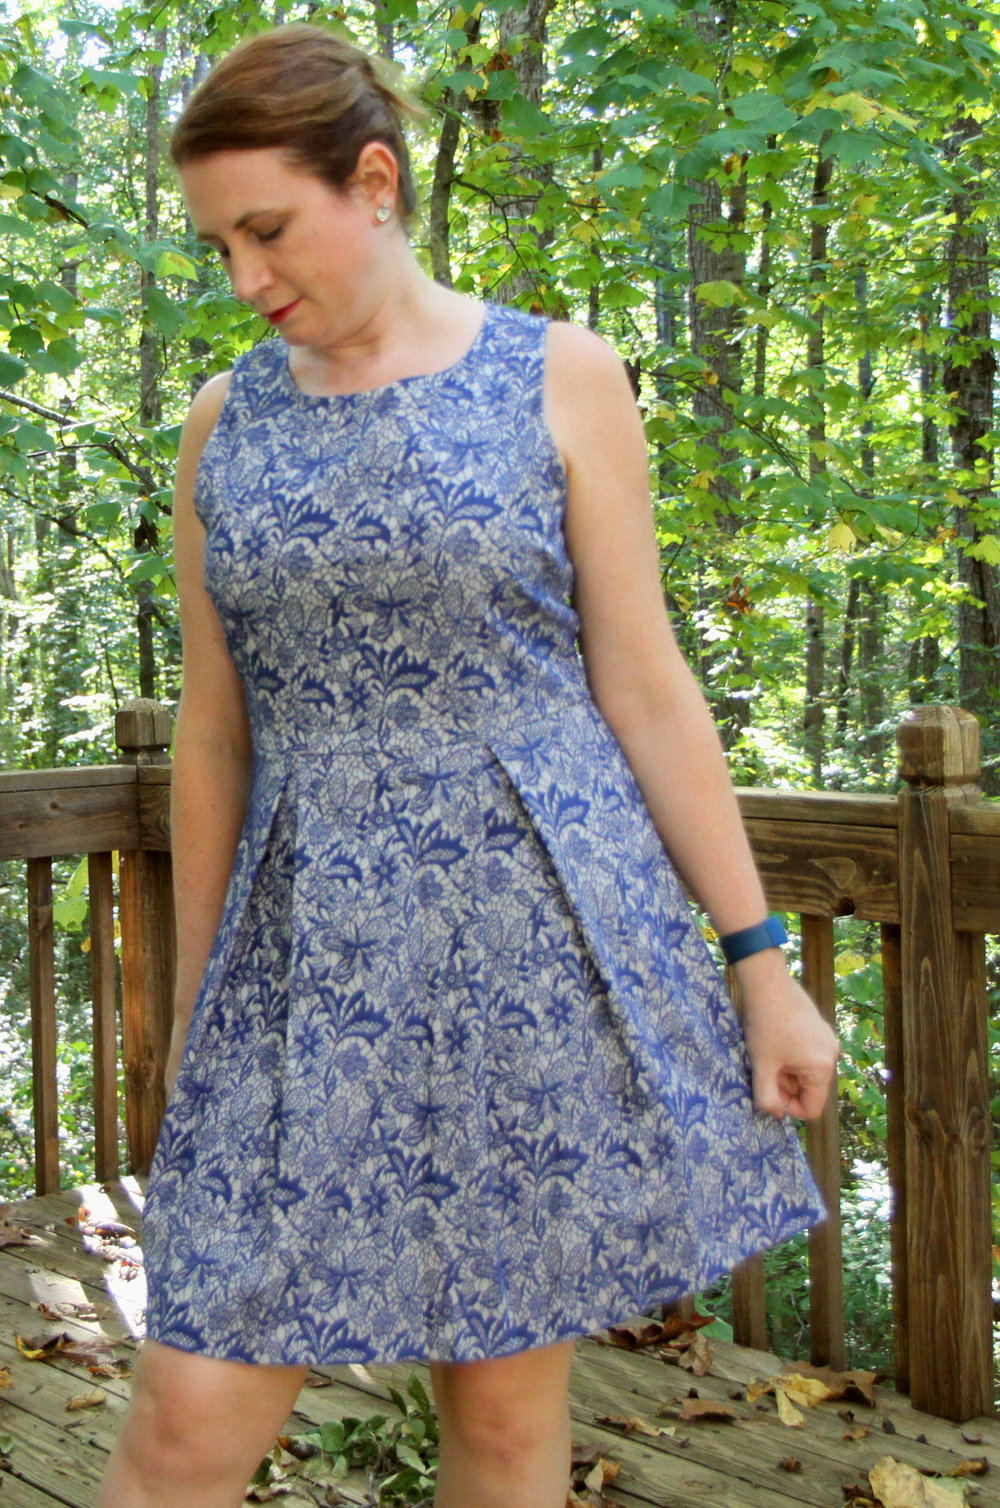 I have only worn this dress for this photo shoot! Jace Embroidered Lace Dress by 41Hawthorn and from Stitch Fix.